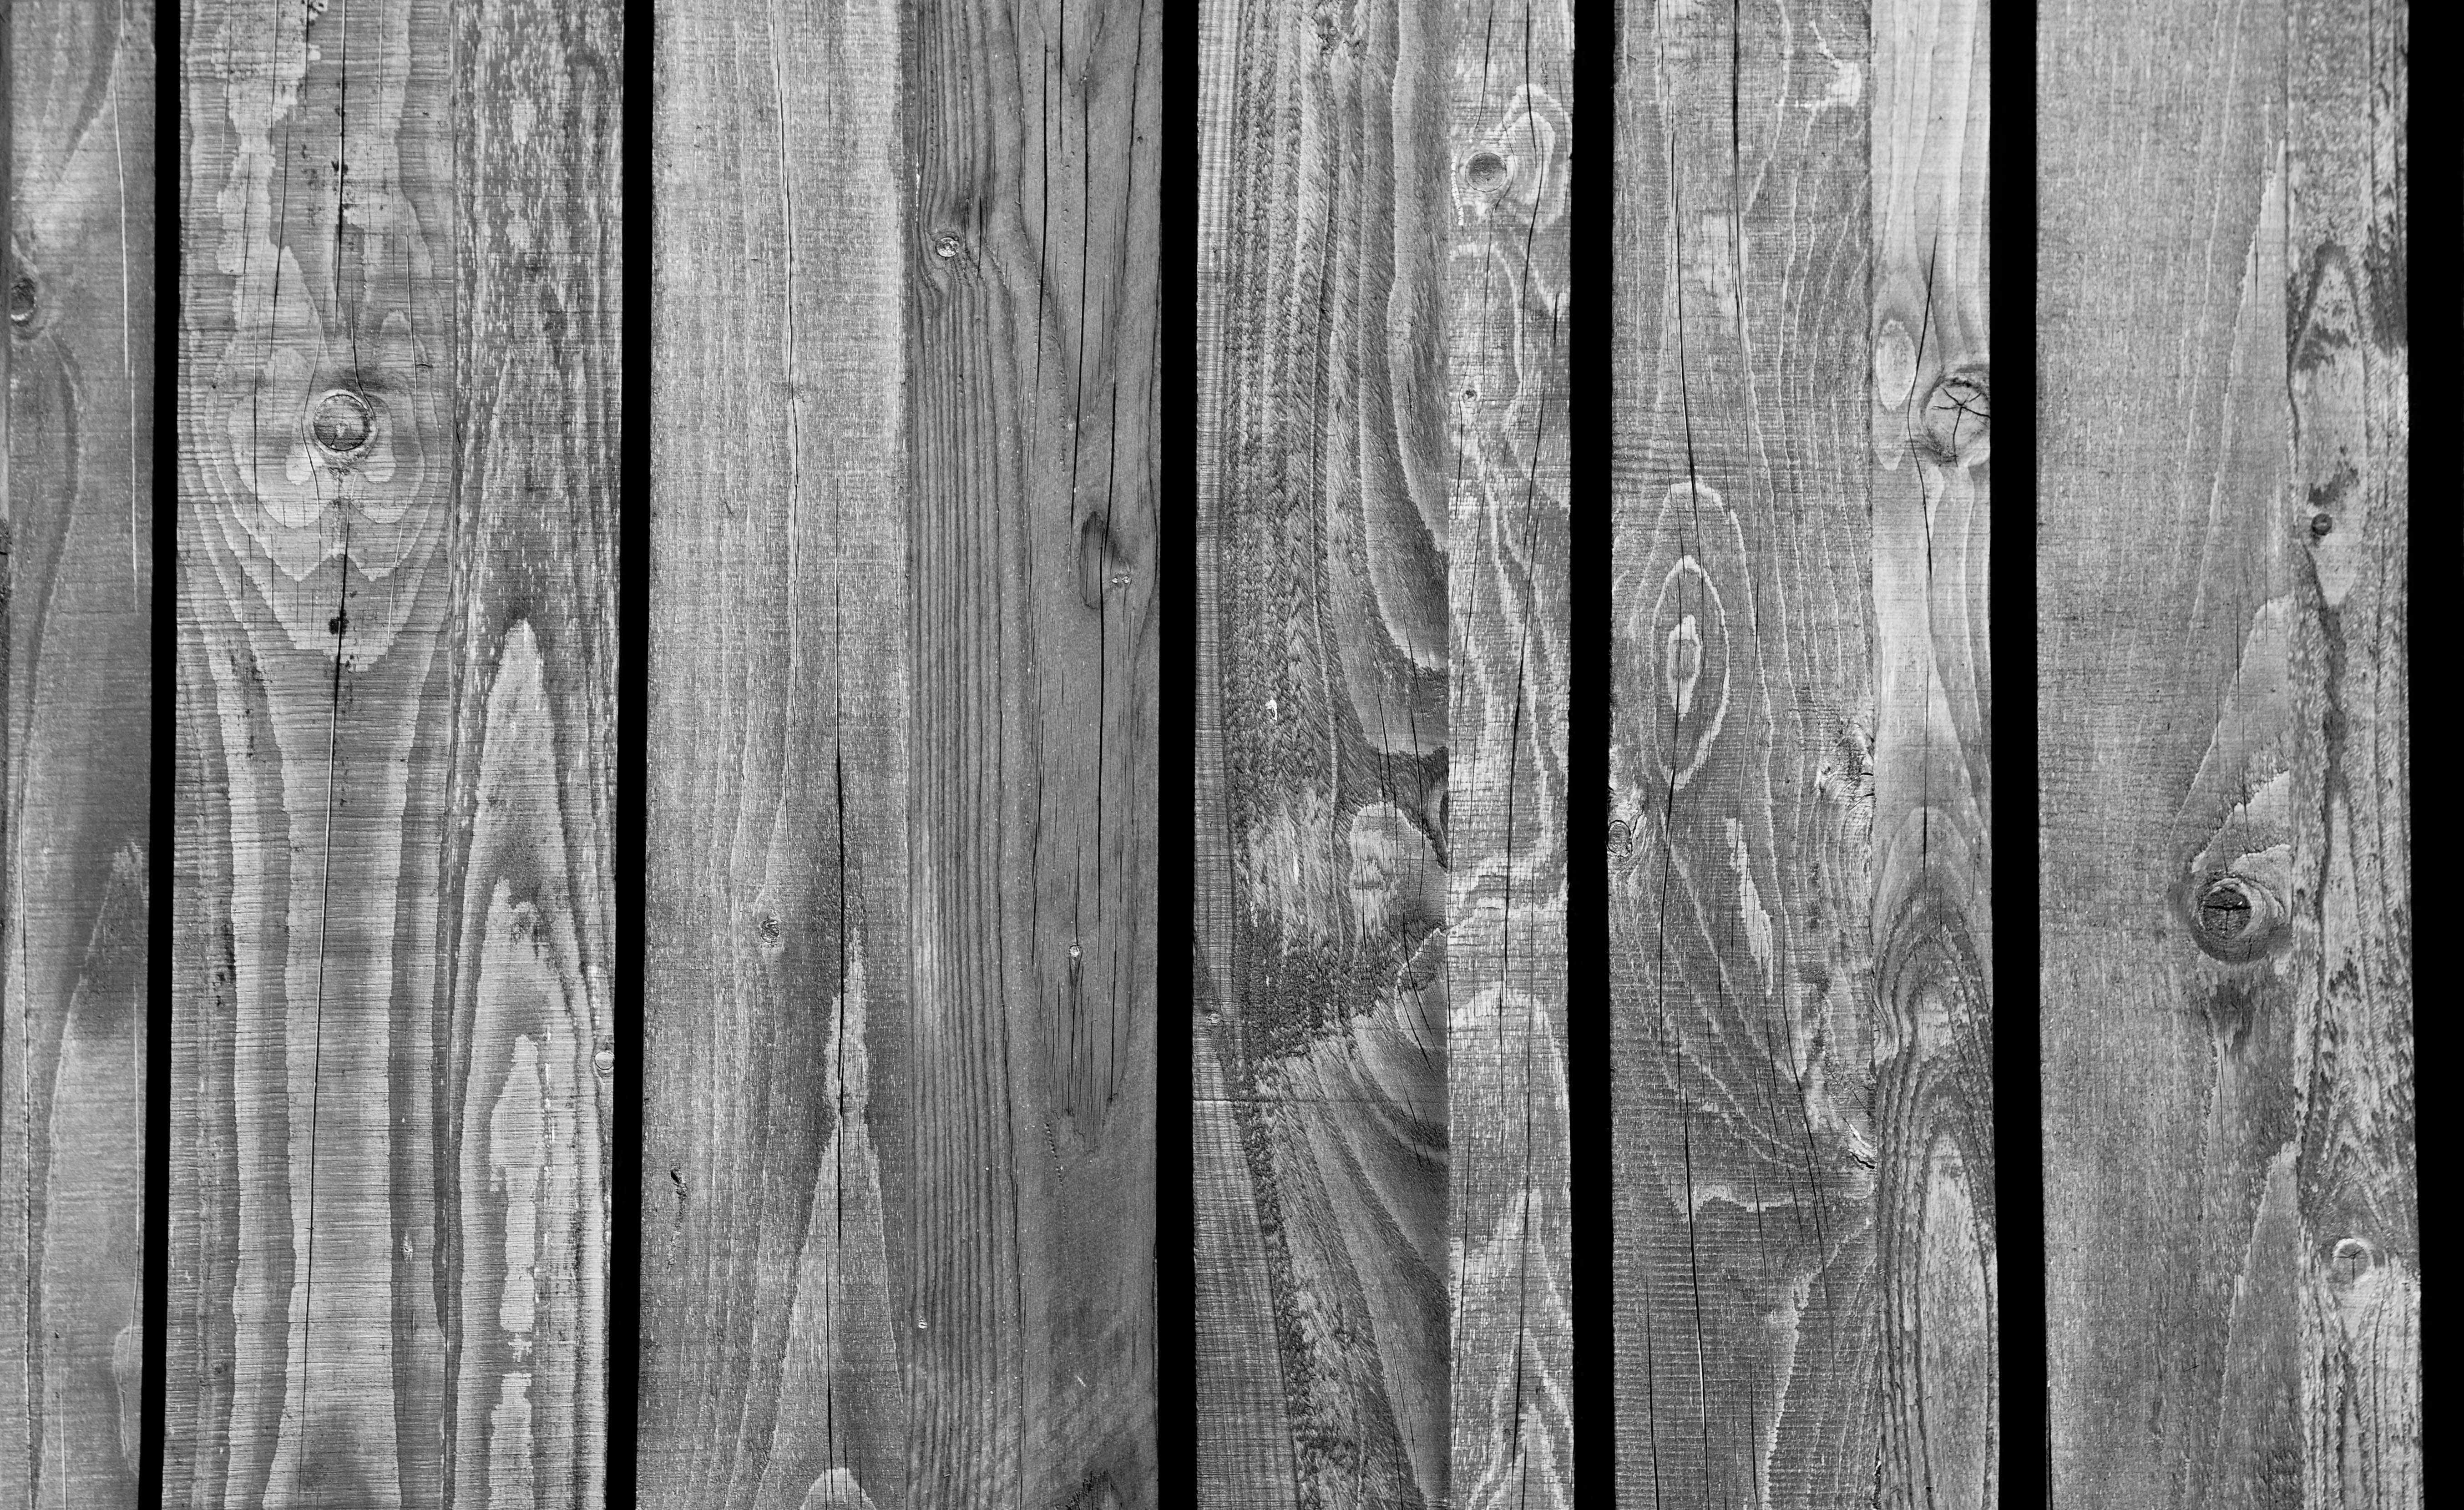 Grayscale Photo of Wood Pallet